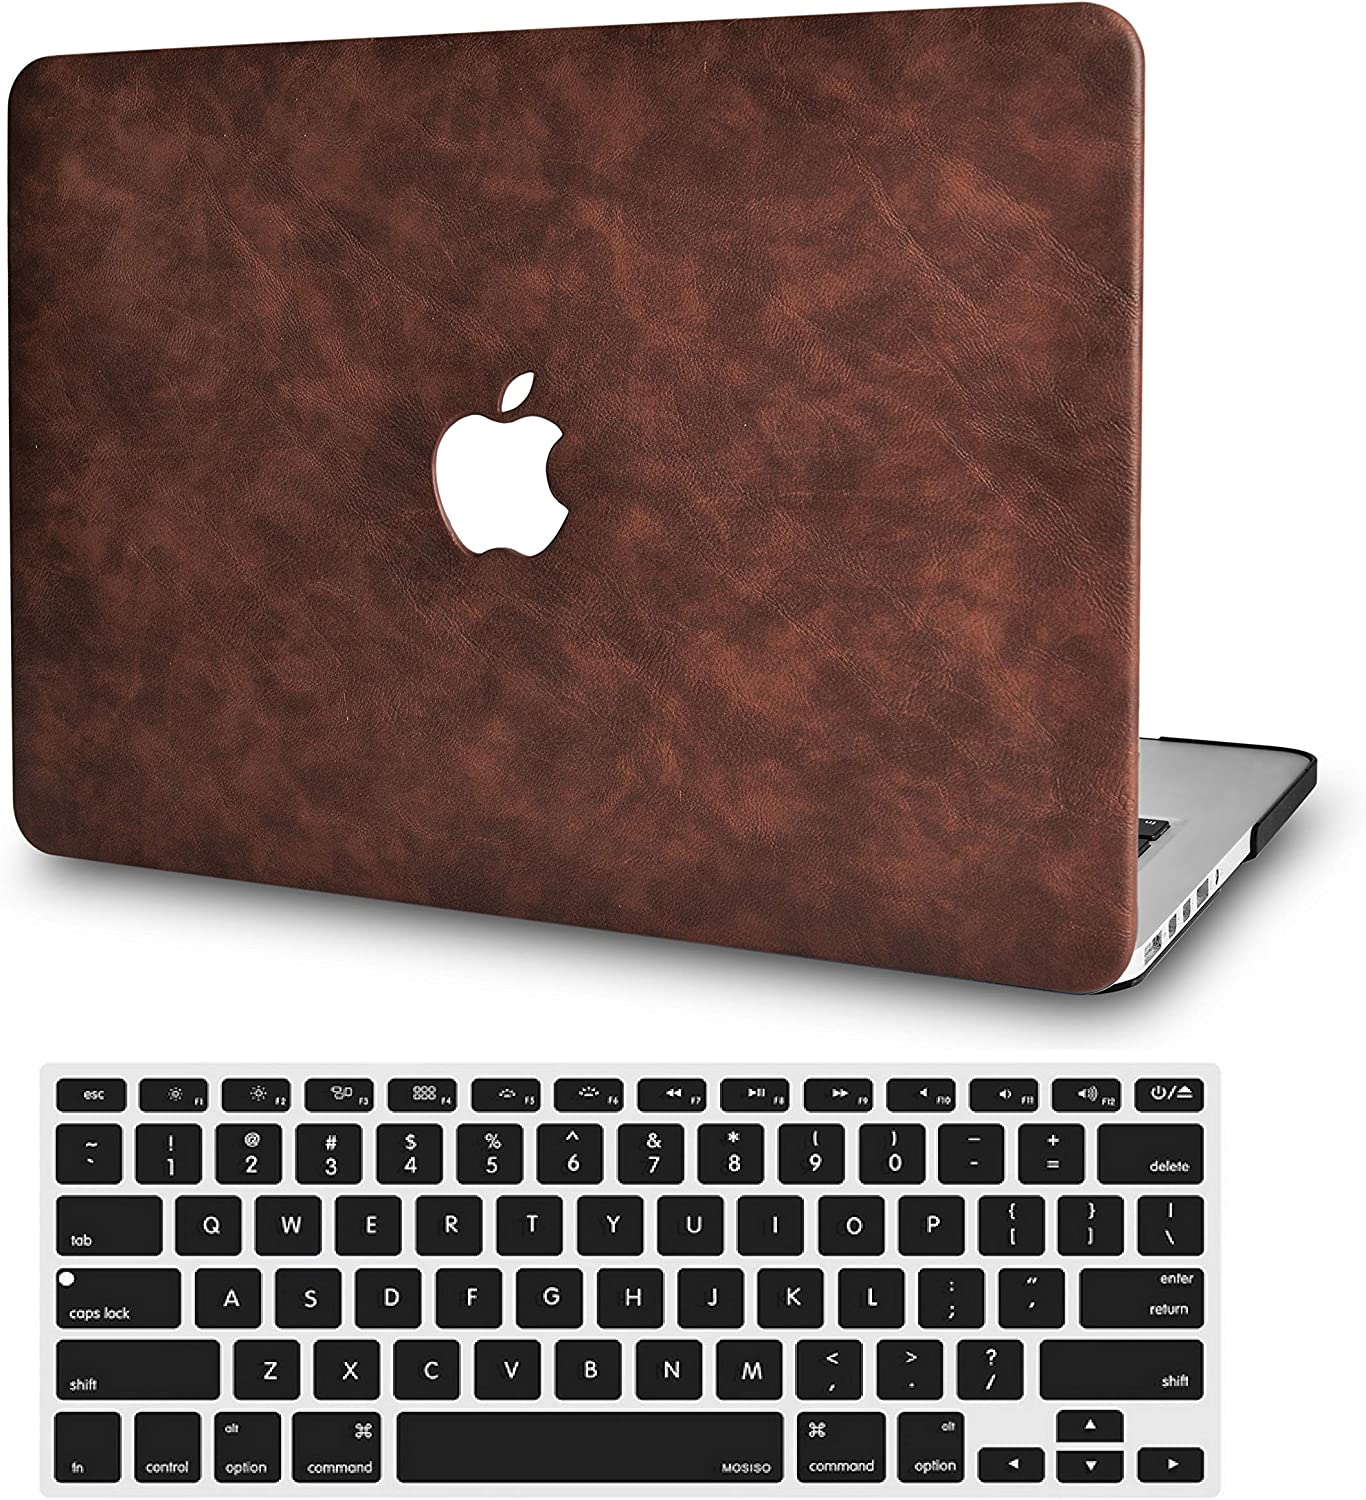 LuvCase 2 in 1 Laptop Case for MacBook Air 13 Inch A1466/A1369 (No Touch ID)(2010-2017) Leather Hard Shell Cover & Keyboard Cover (Brown Cow Leather)